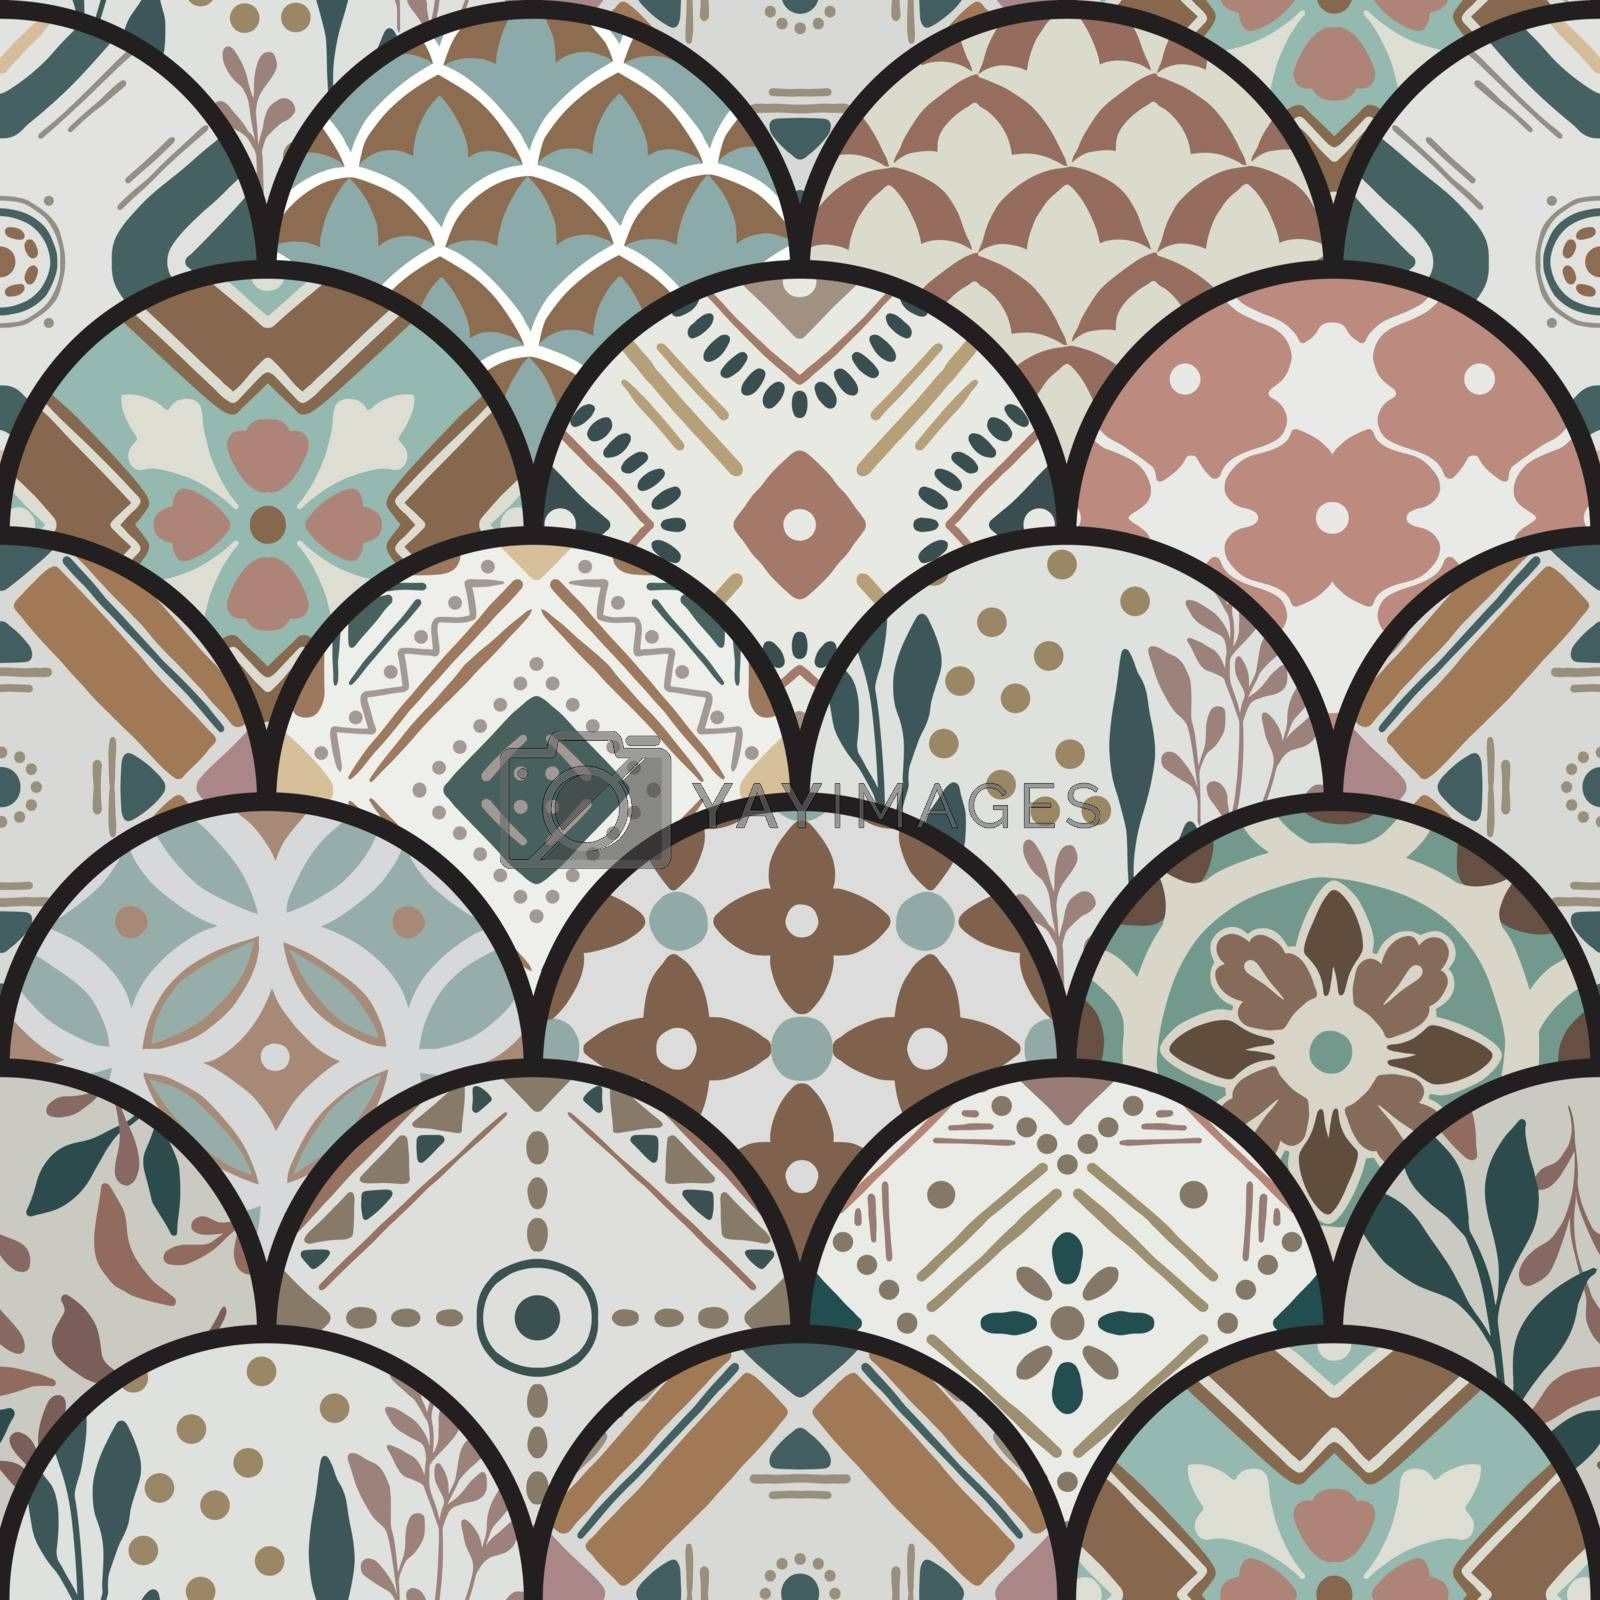 Luxury oriental tile seamless pattern in style of colorful floral patchwork boho chic with mandala in half round design elements. Flower vector ornament background with eastern motif